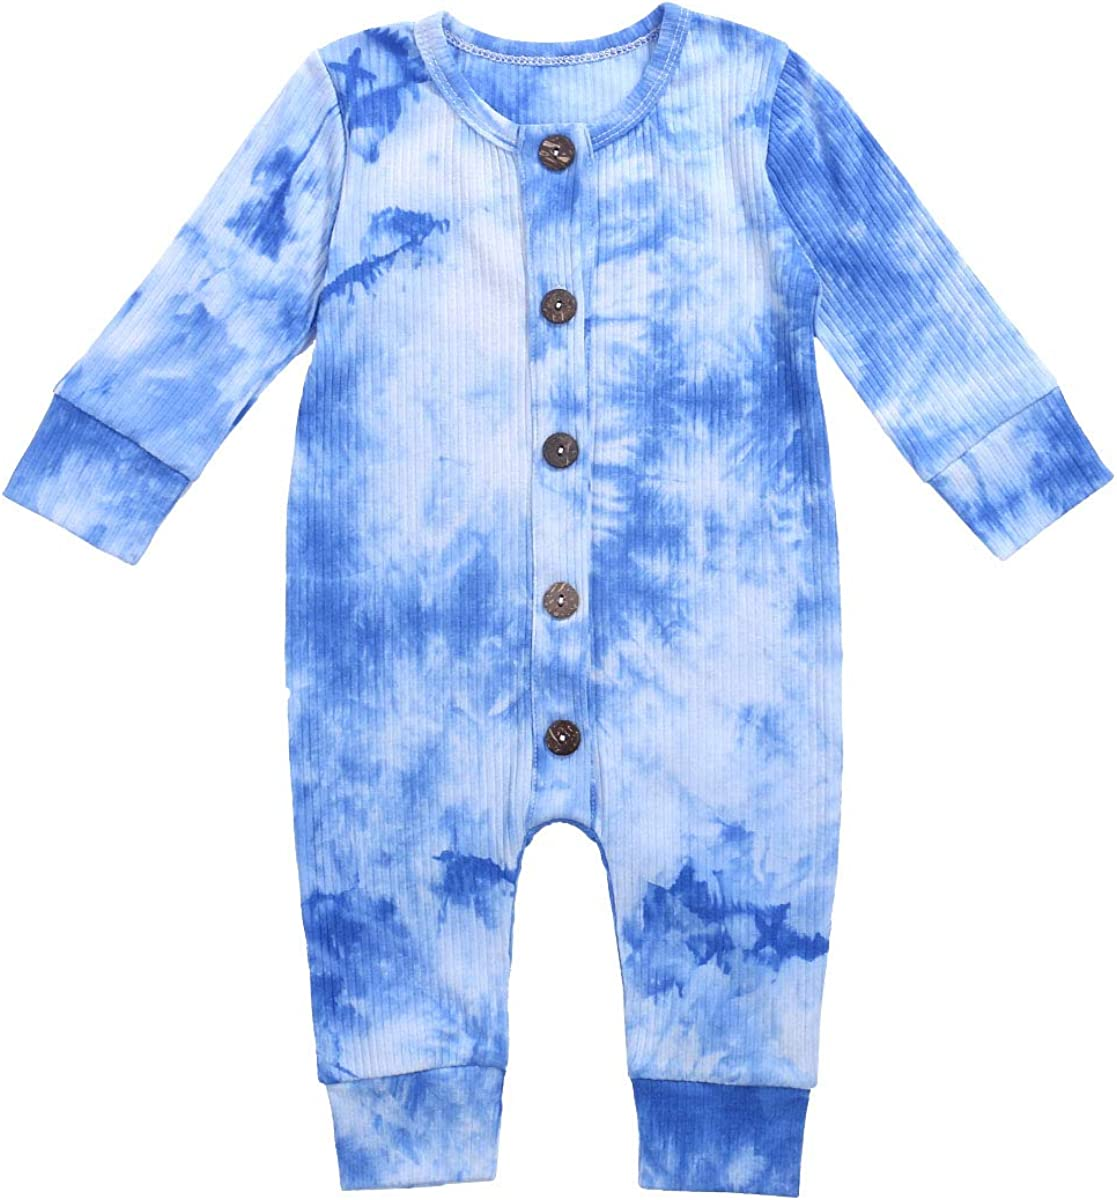 FIOMVA Newborn Unisex Baby Boys Girls Tie Dye Outfits Button Romper One Piece Jumpsuit Long Sleeve Fall Clothes